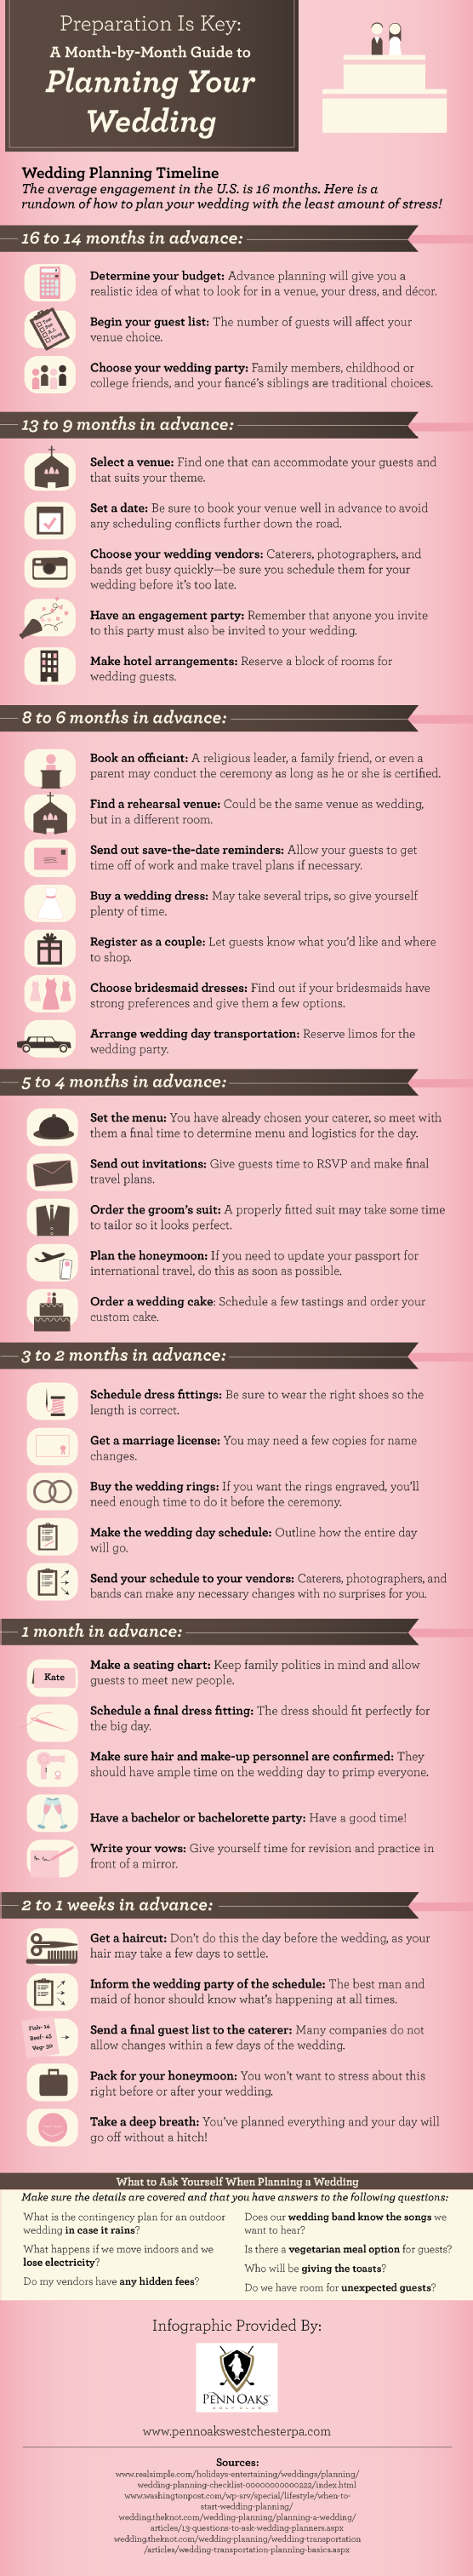 12 month wedding planning checklist pinterest wedding reception 8 months before your wedding you should book an officiant send out save the dates buy your dress and choose bridesmaids dresses solutioingenieria Images